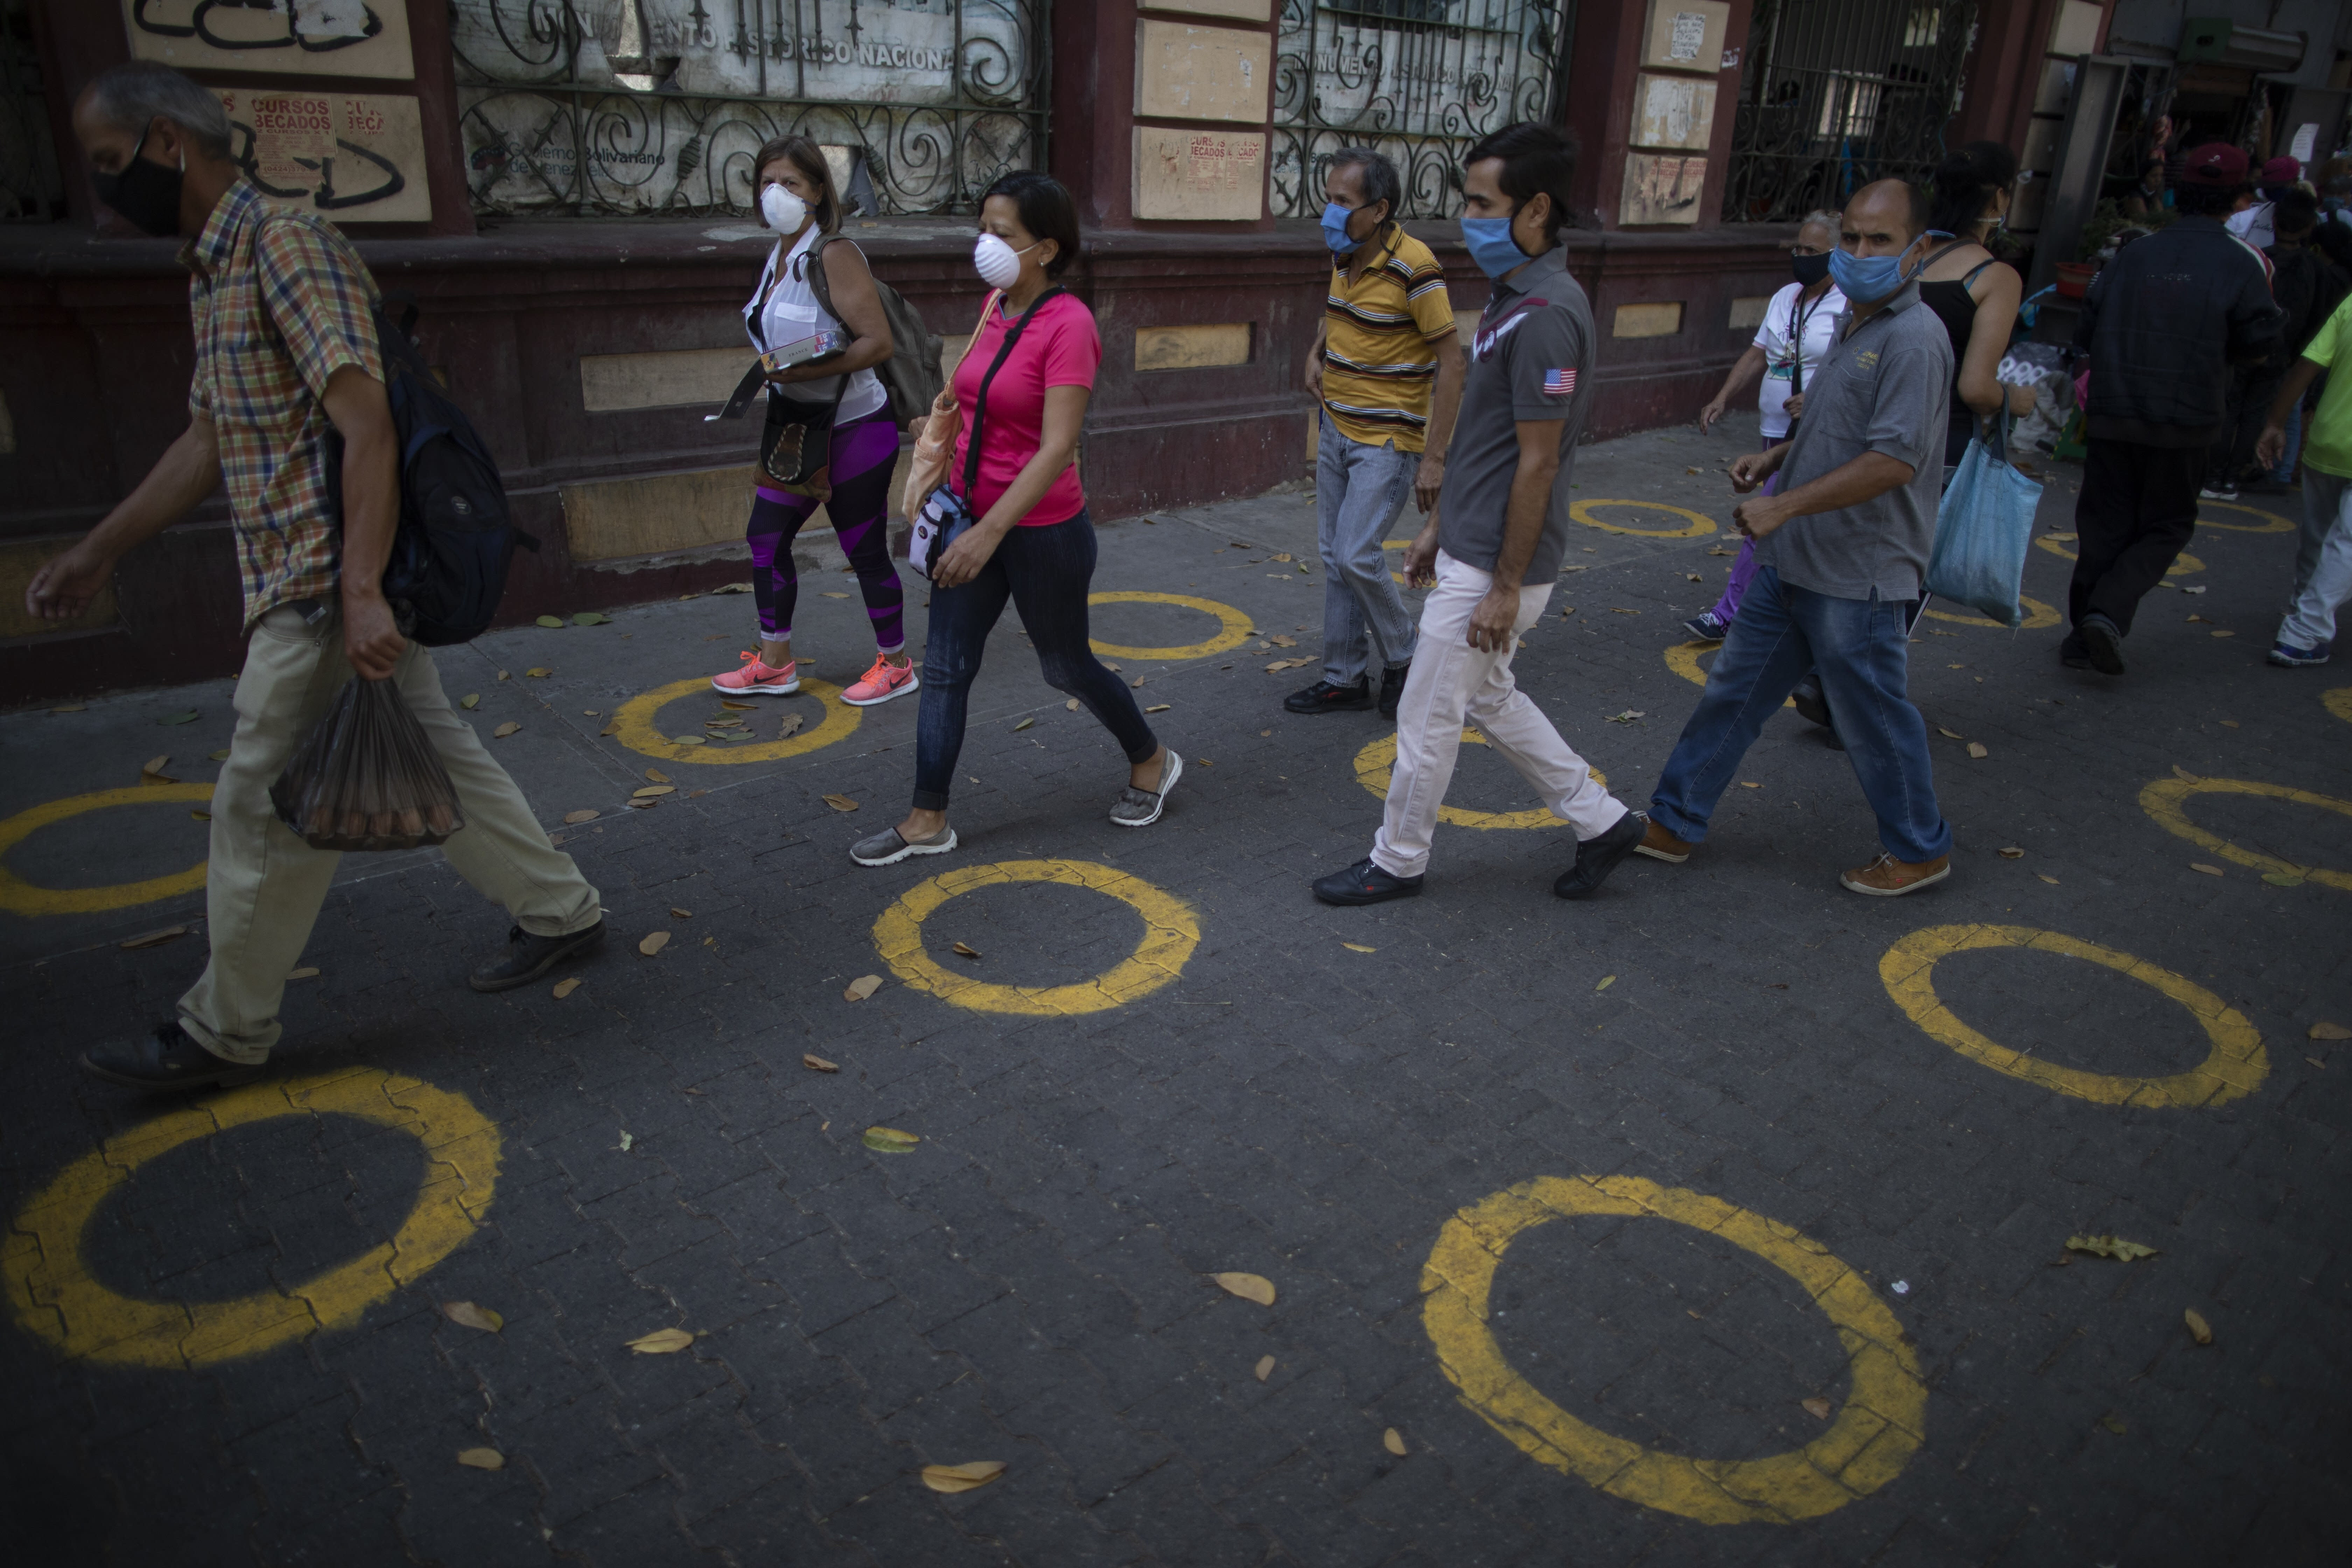 Yellow circles on a pavement serve as visual cues to help shoppers adhere to social distancing when lines form, as a precaution against the spread of the new coronavirus, near a popular market in Caracas, Venezuela, Saturday, May 23, 2020. (AP Photo/Ariana Cubillos)